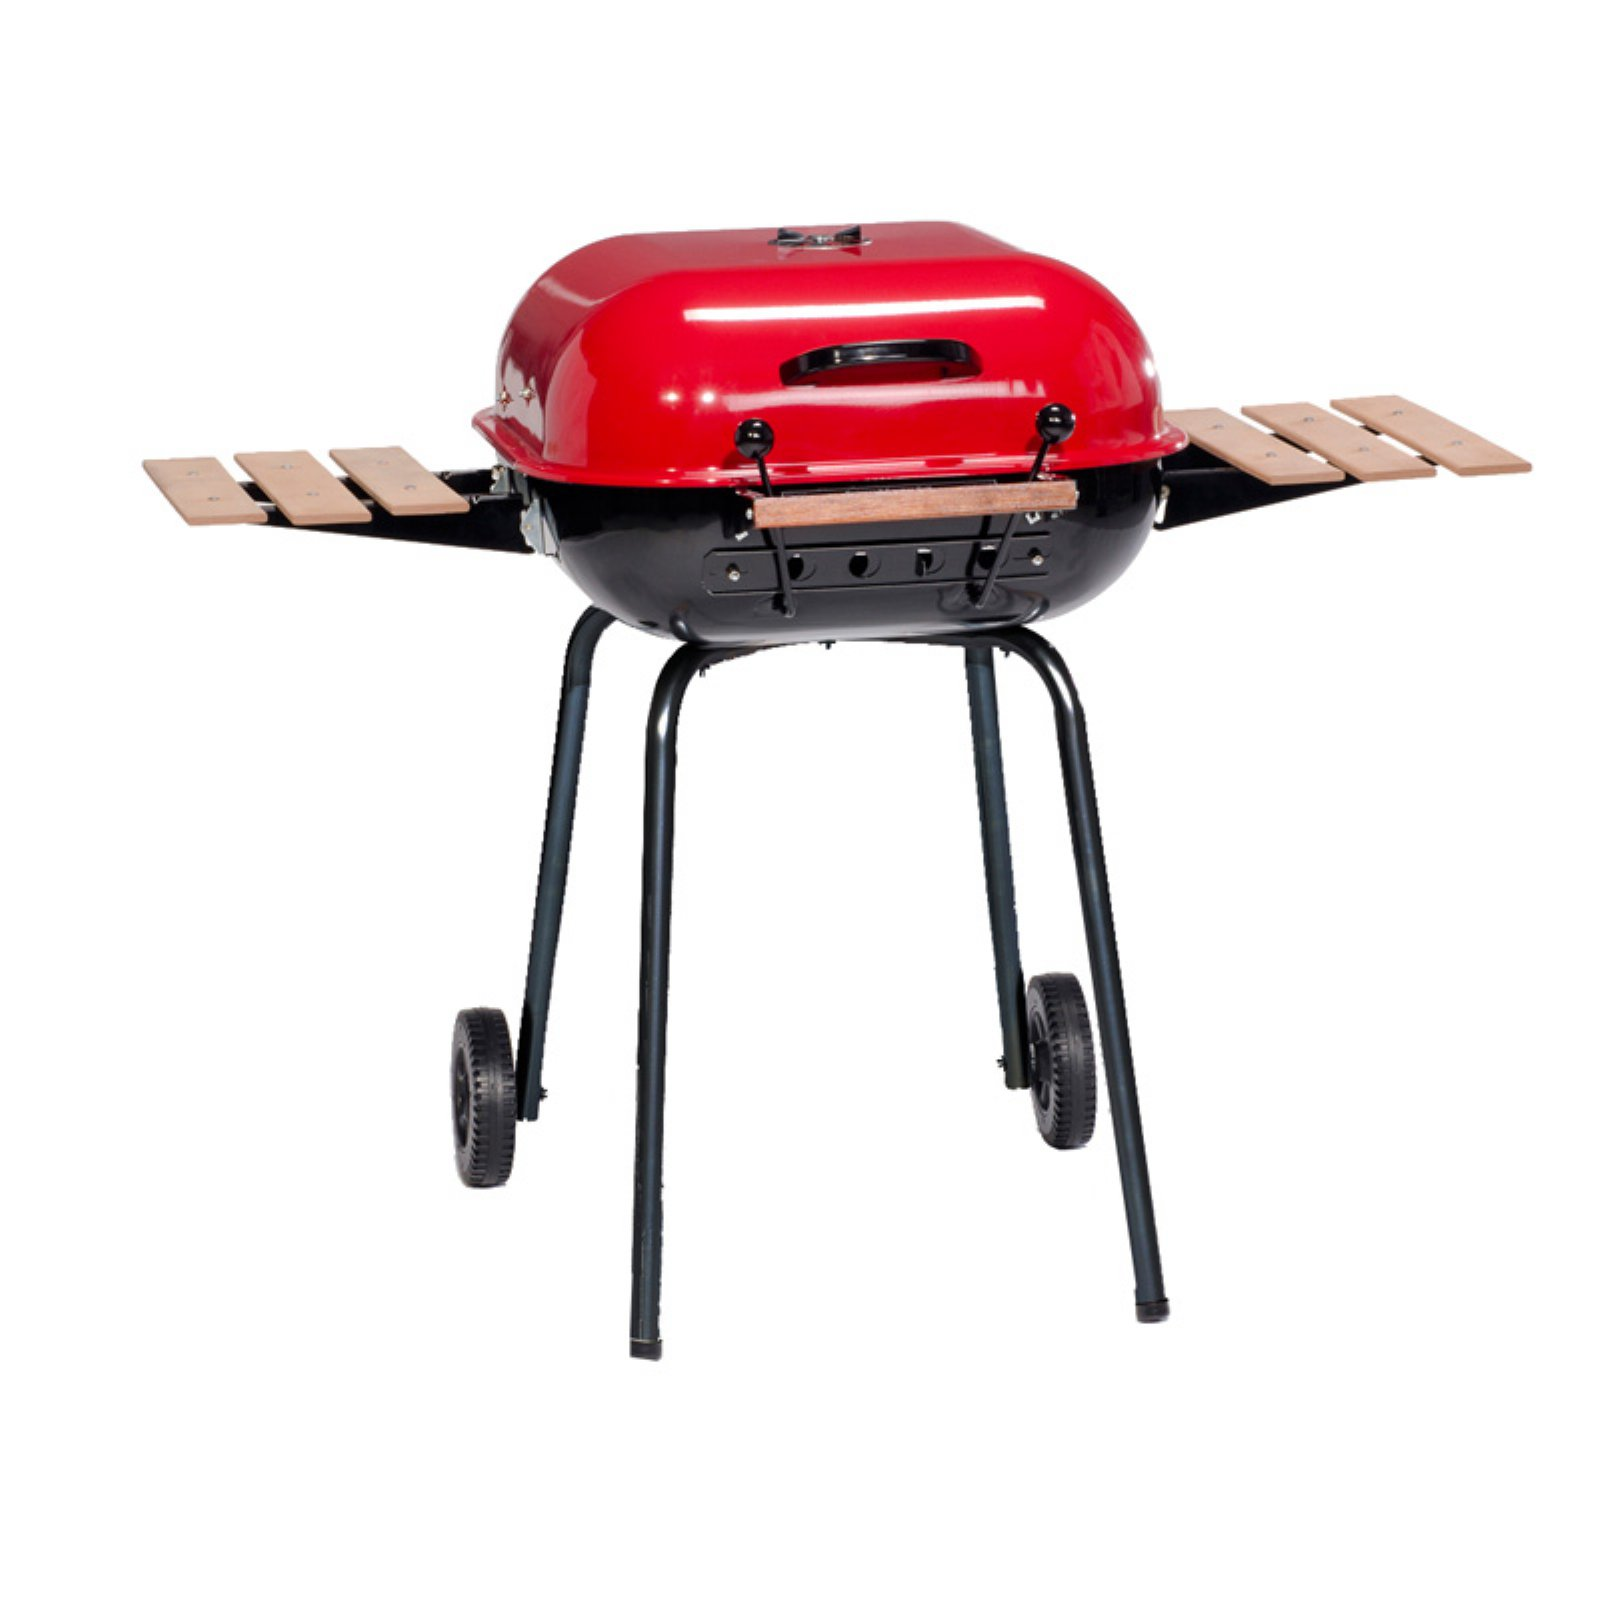 Meco Americana 21 Inch Charcoal Grill With Adjustable Cooking Grate Walmart Com Walmart Com